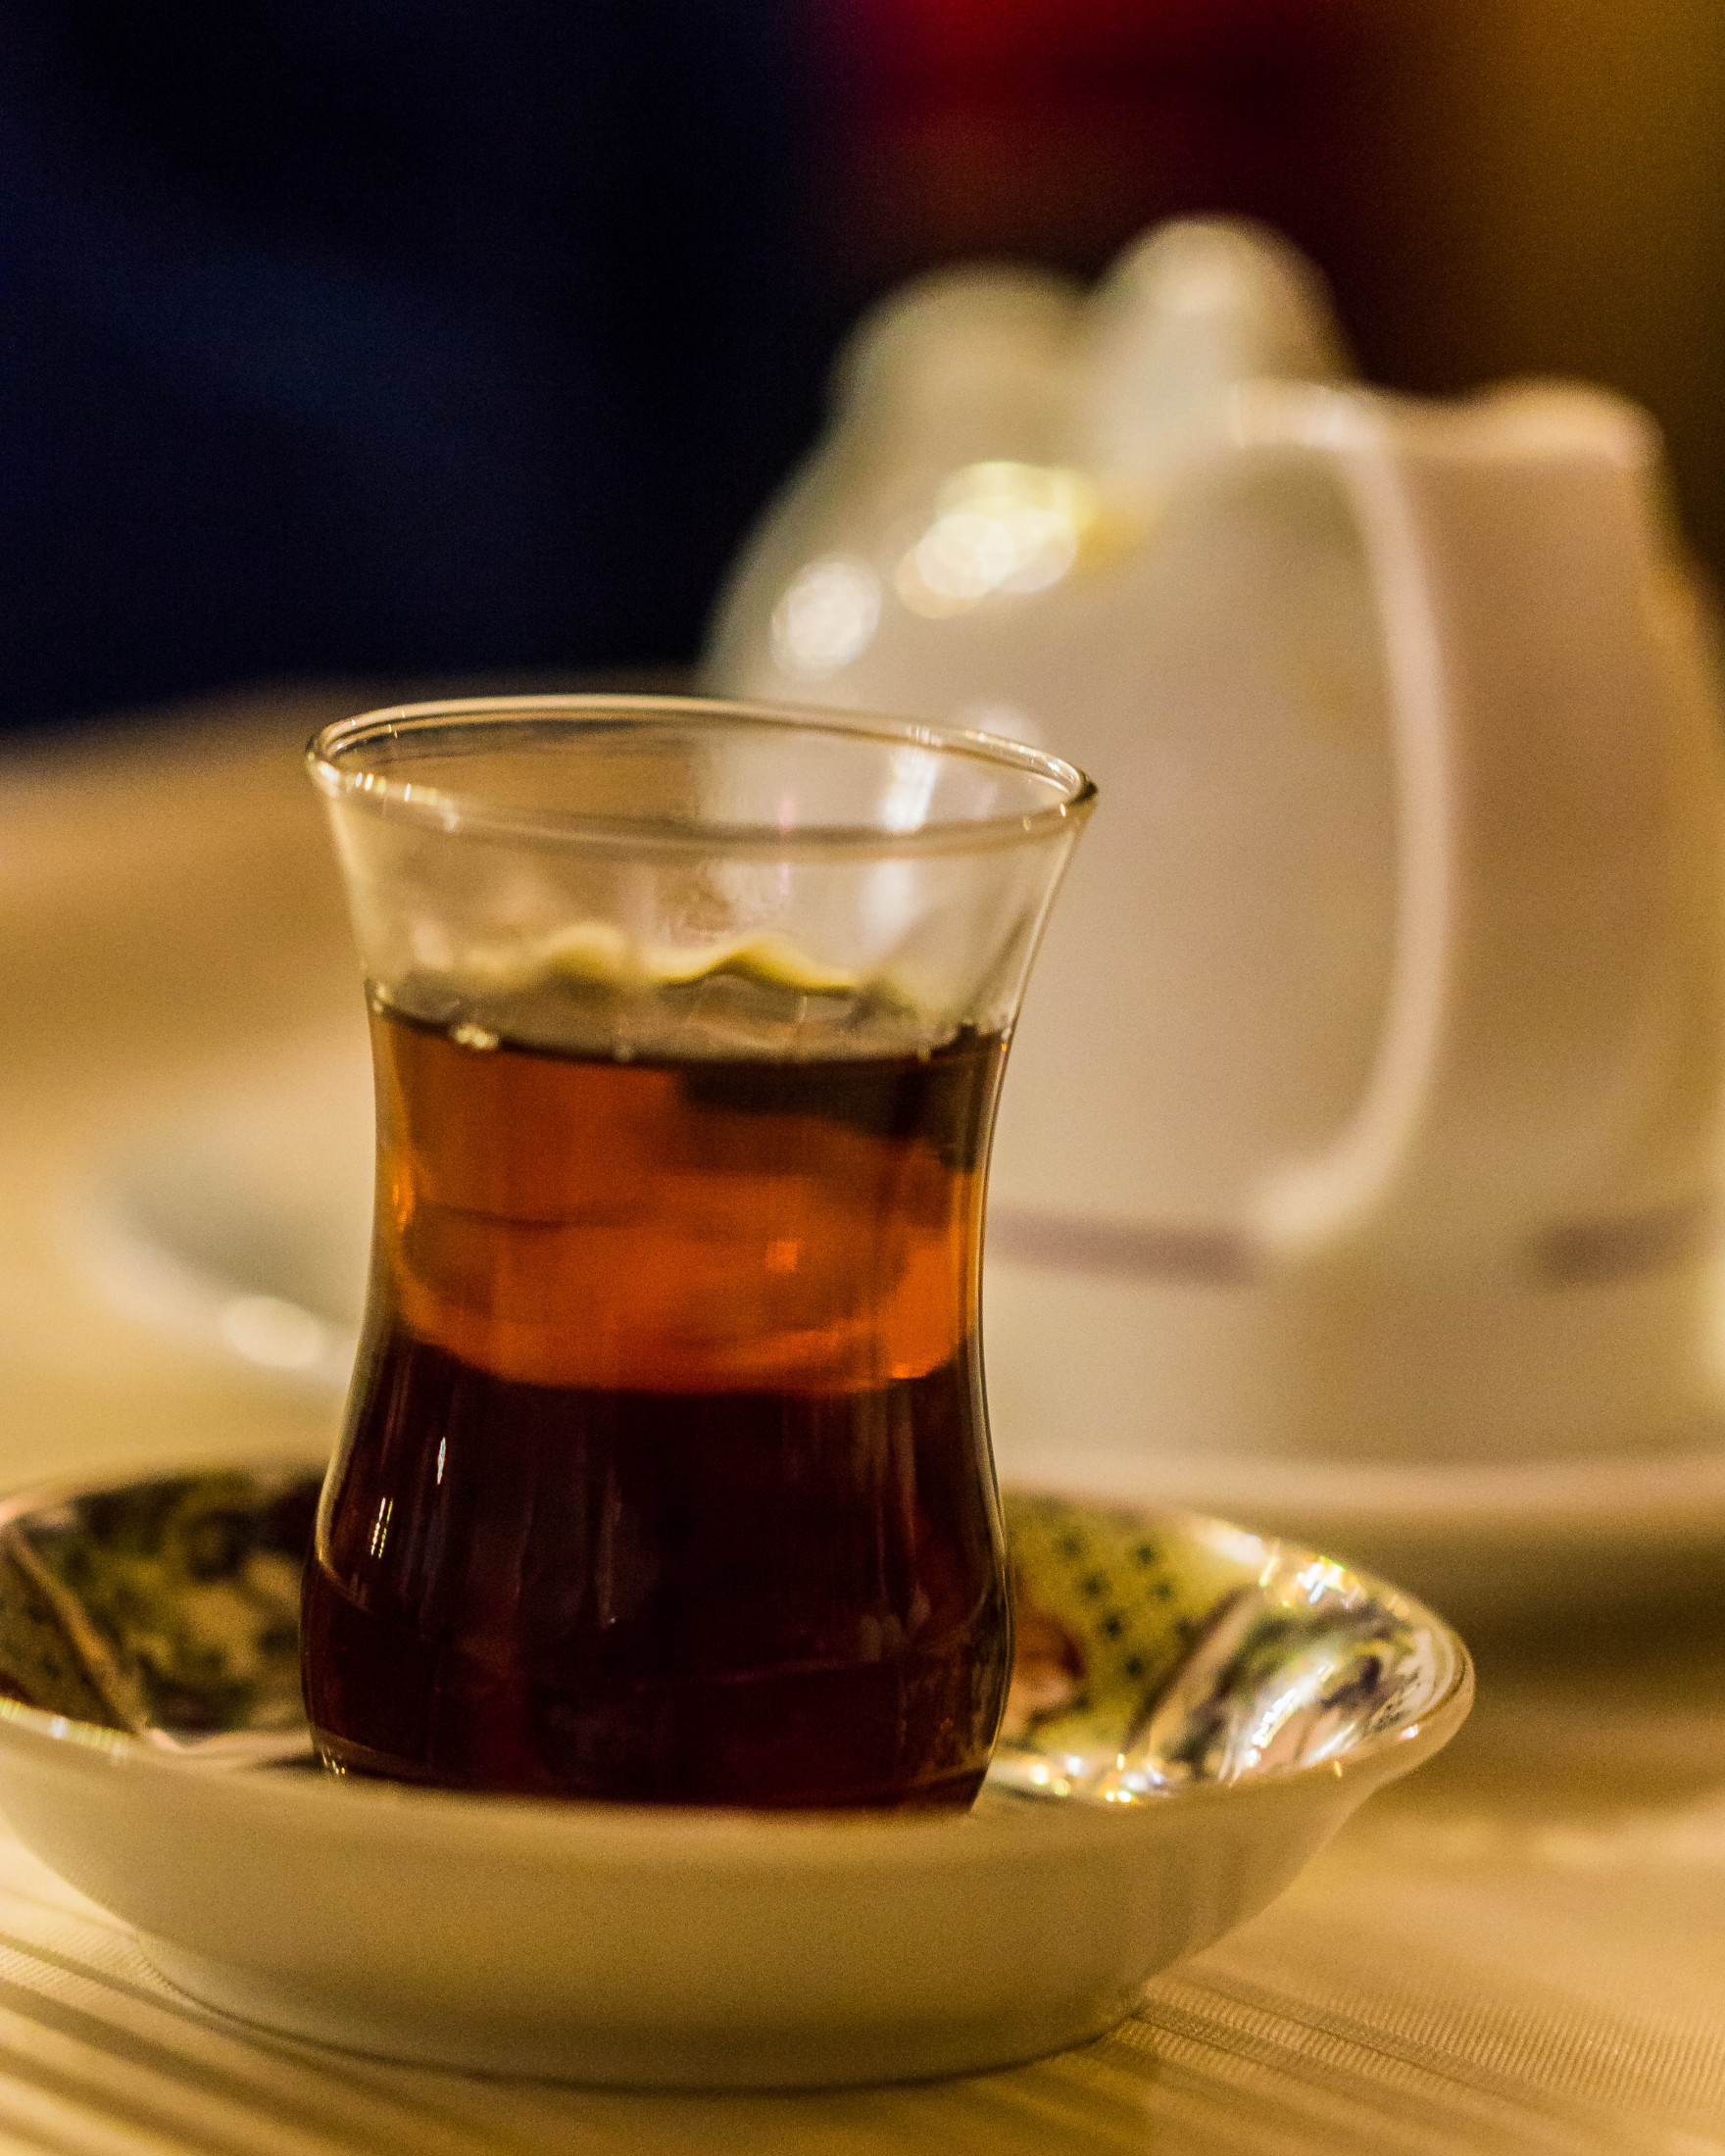 For the Love of Tea in Iran